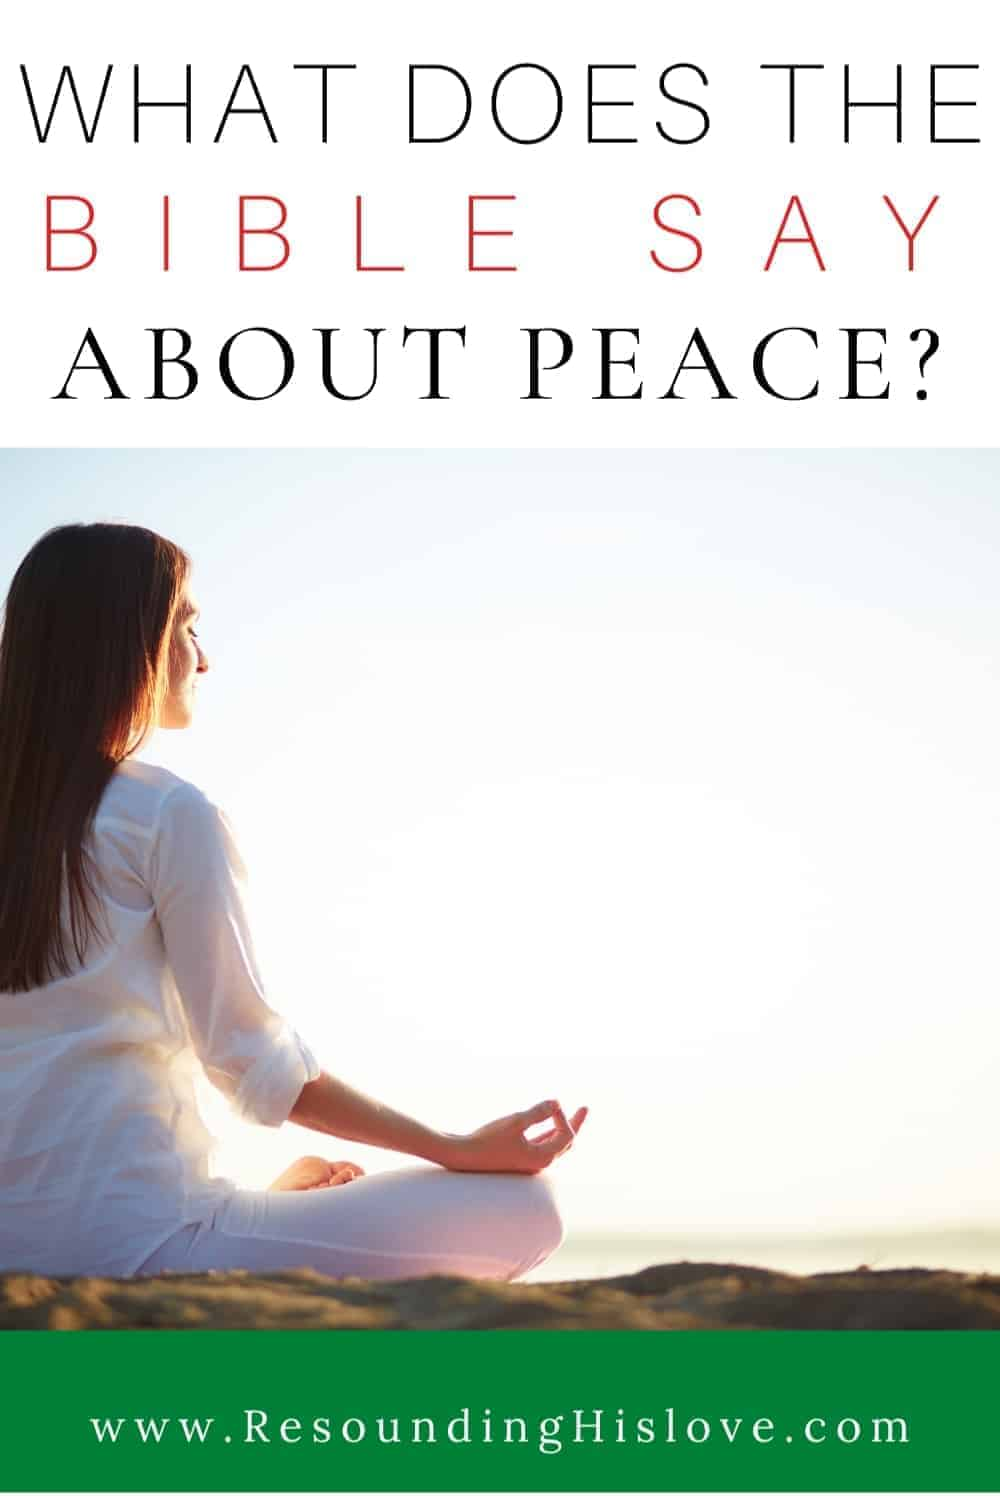 a woman sitting with legs folded eyes closed, palms up, in prayer, with text What Does the Bible Say About Peace?